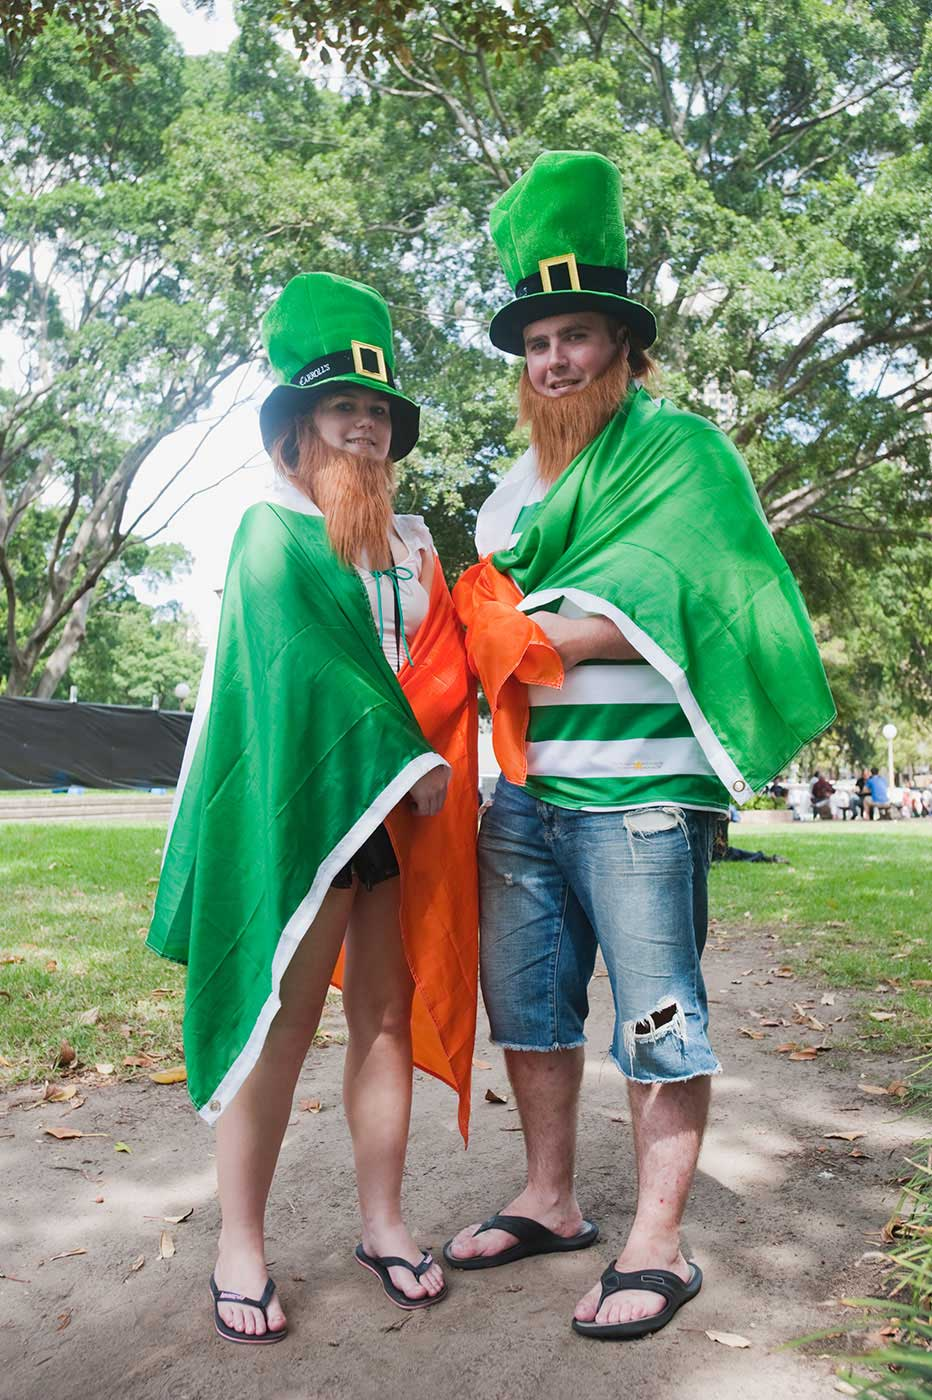 A woman and man draped in the Irish flag and wearing gimmick Irish hats pose for the camera. - click to view larger image